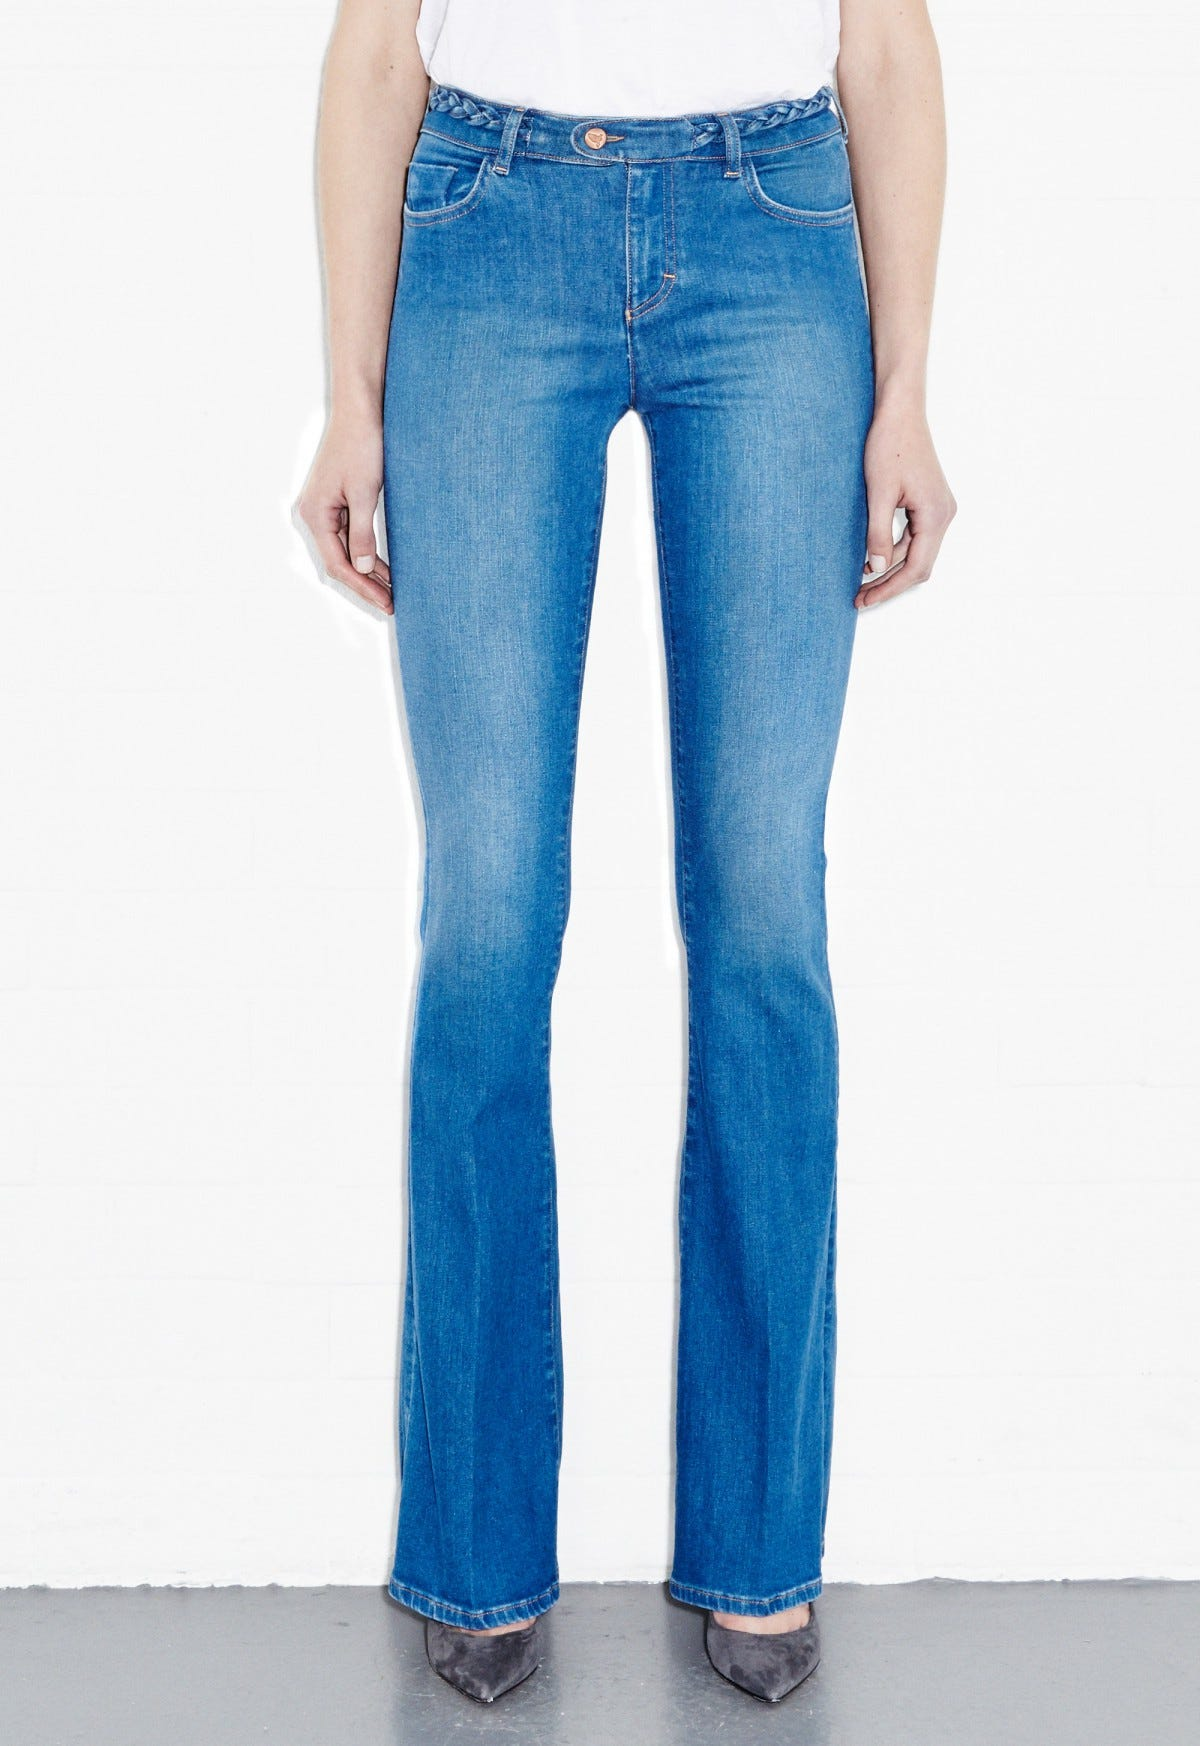 Difference Between Flare And Bootcut Jeans - Jeans Am